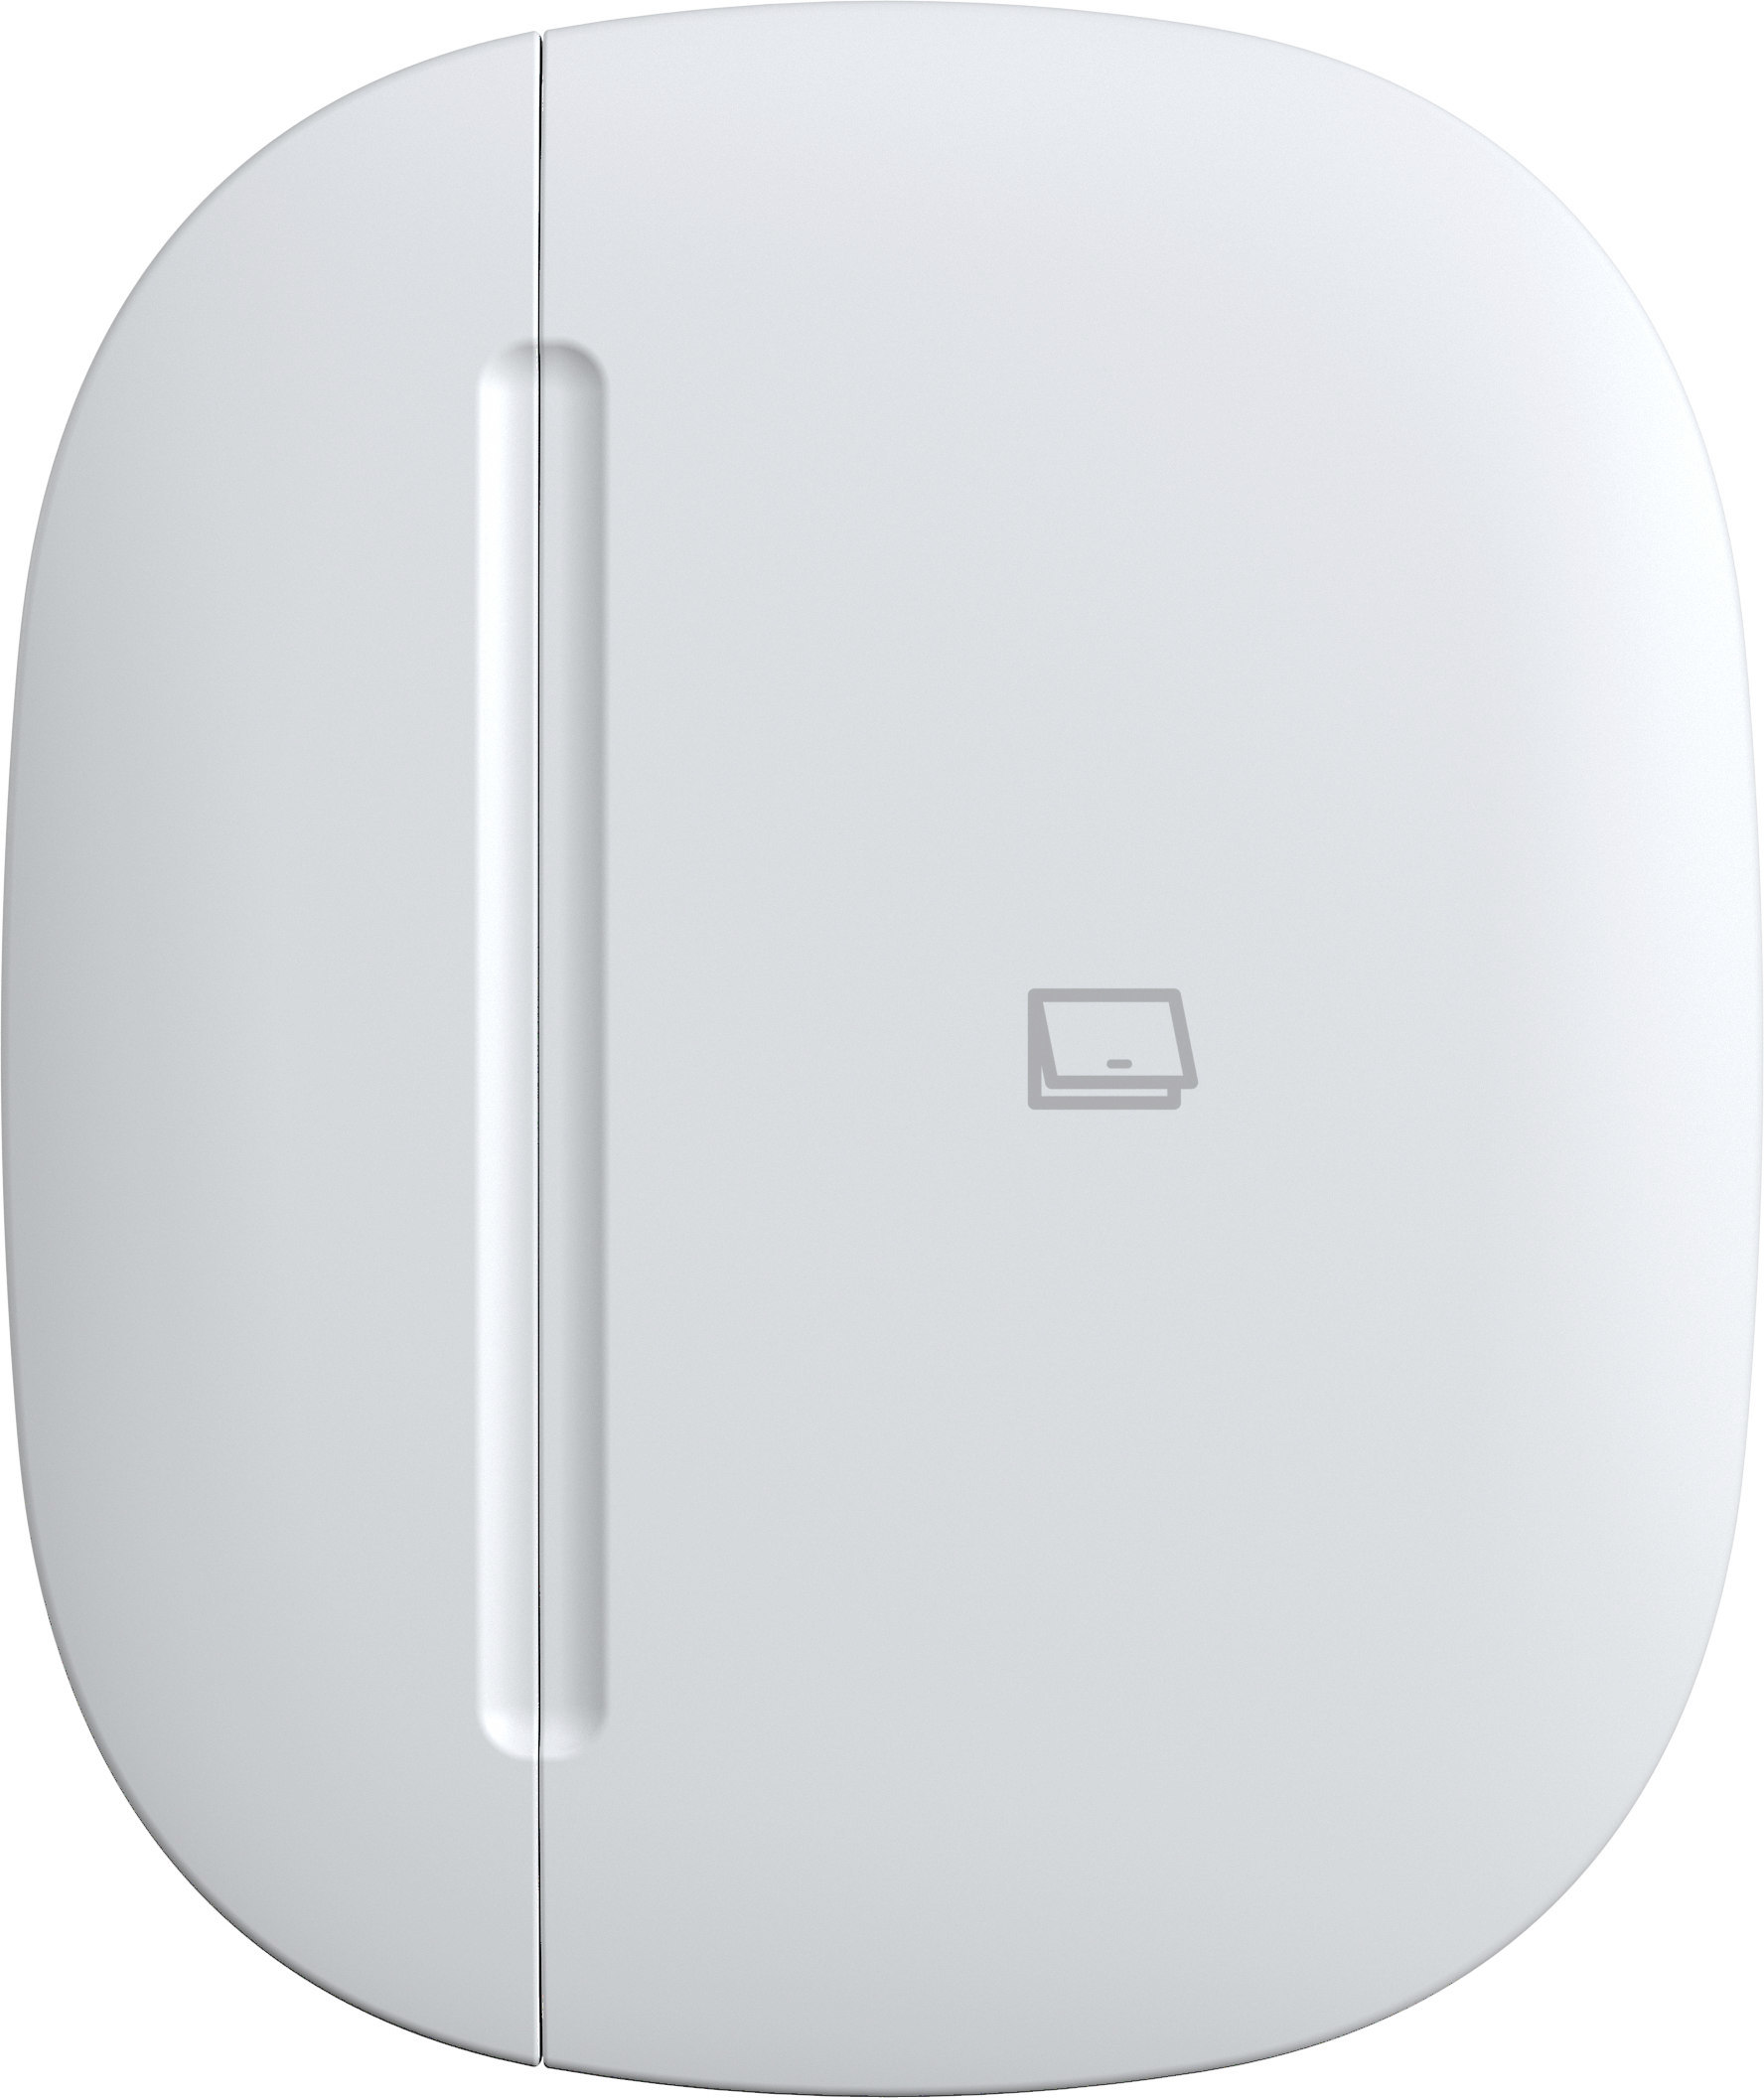 Samsung SmartThings Multipurpose Sensor (2018)